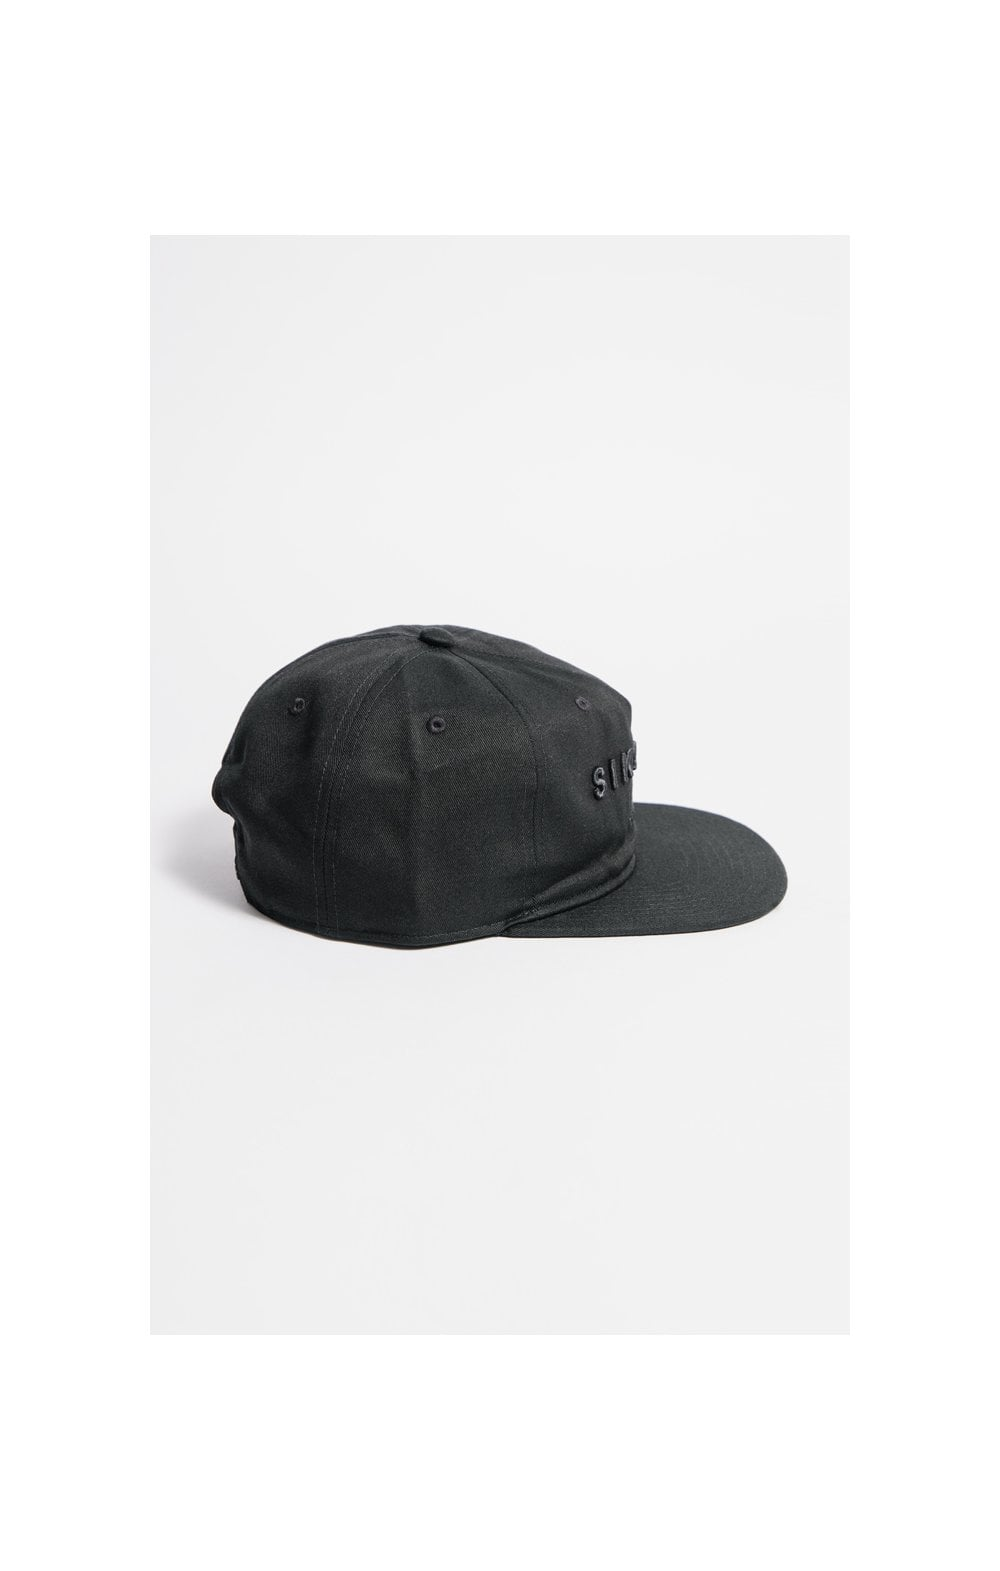 SikSilk Cotton Snap Back - Black (3)